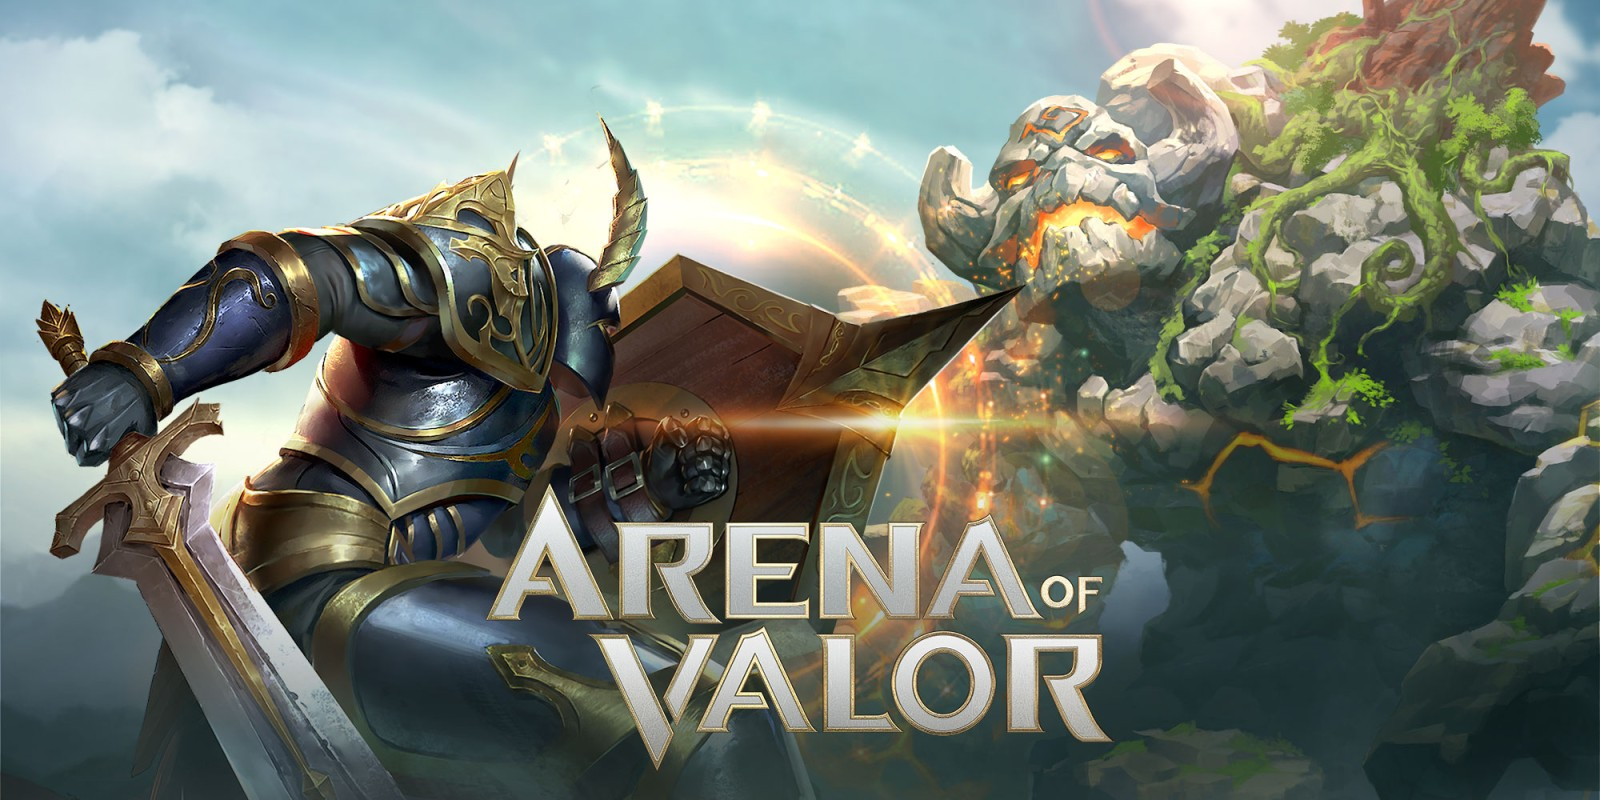 Arena Game Arena Of Valor Nintendo Switch Download Software Games Nintendo